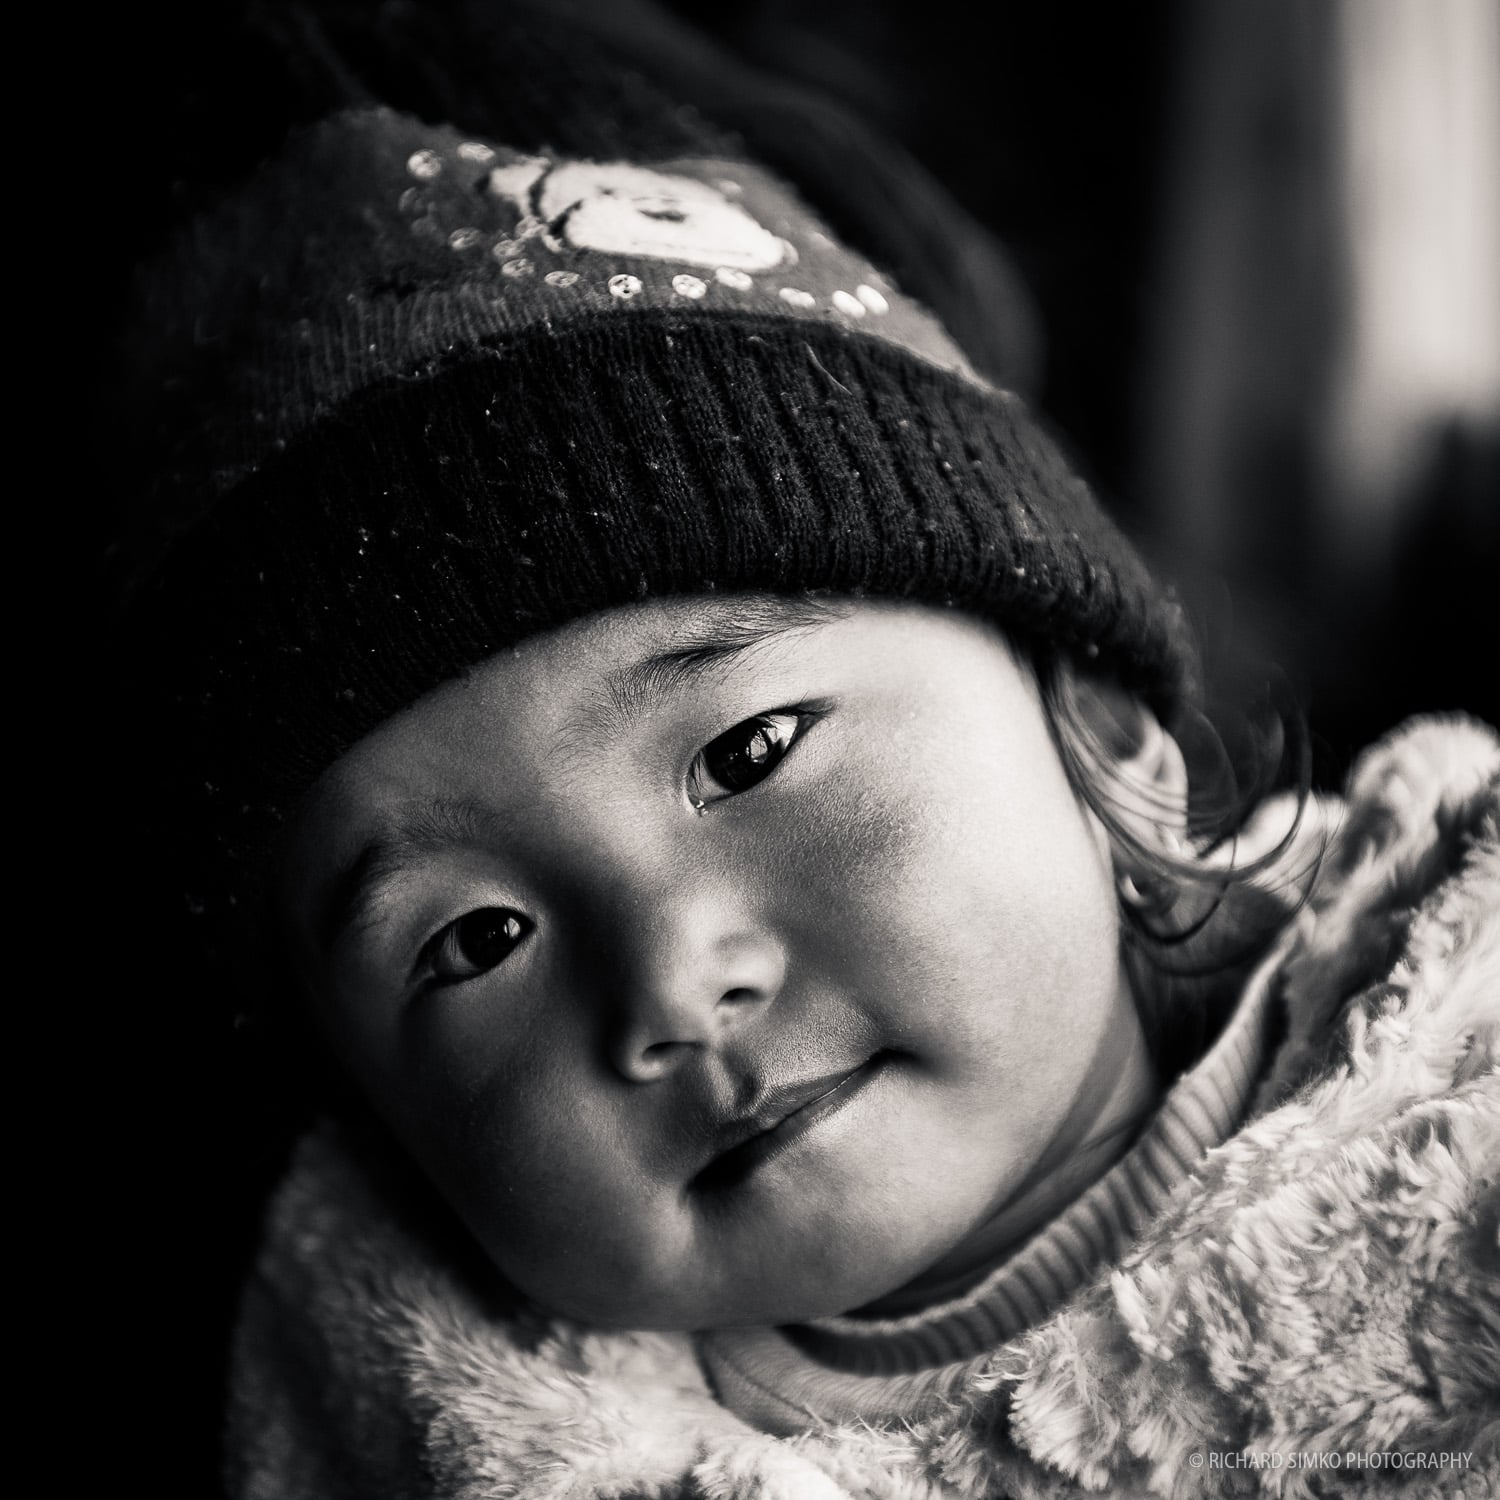 children-of-asia-014.jpg